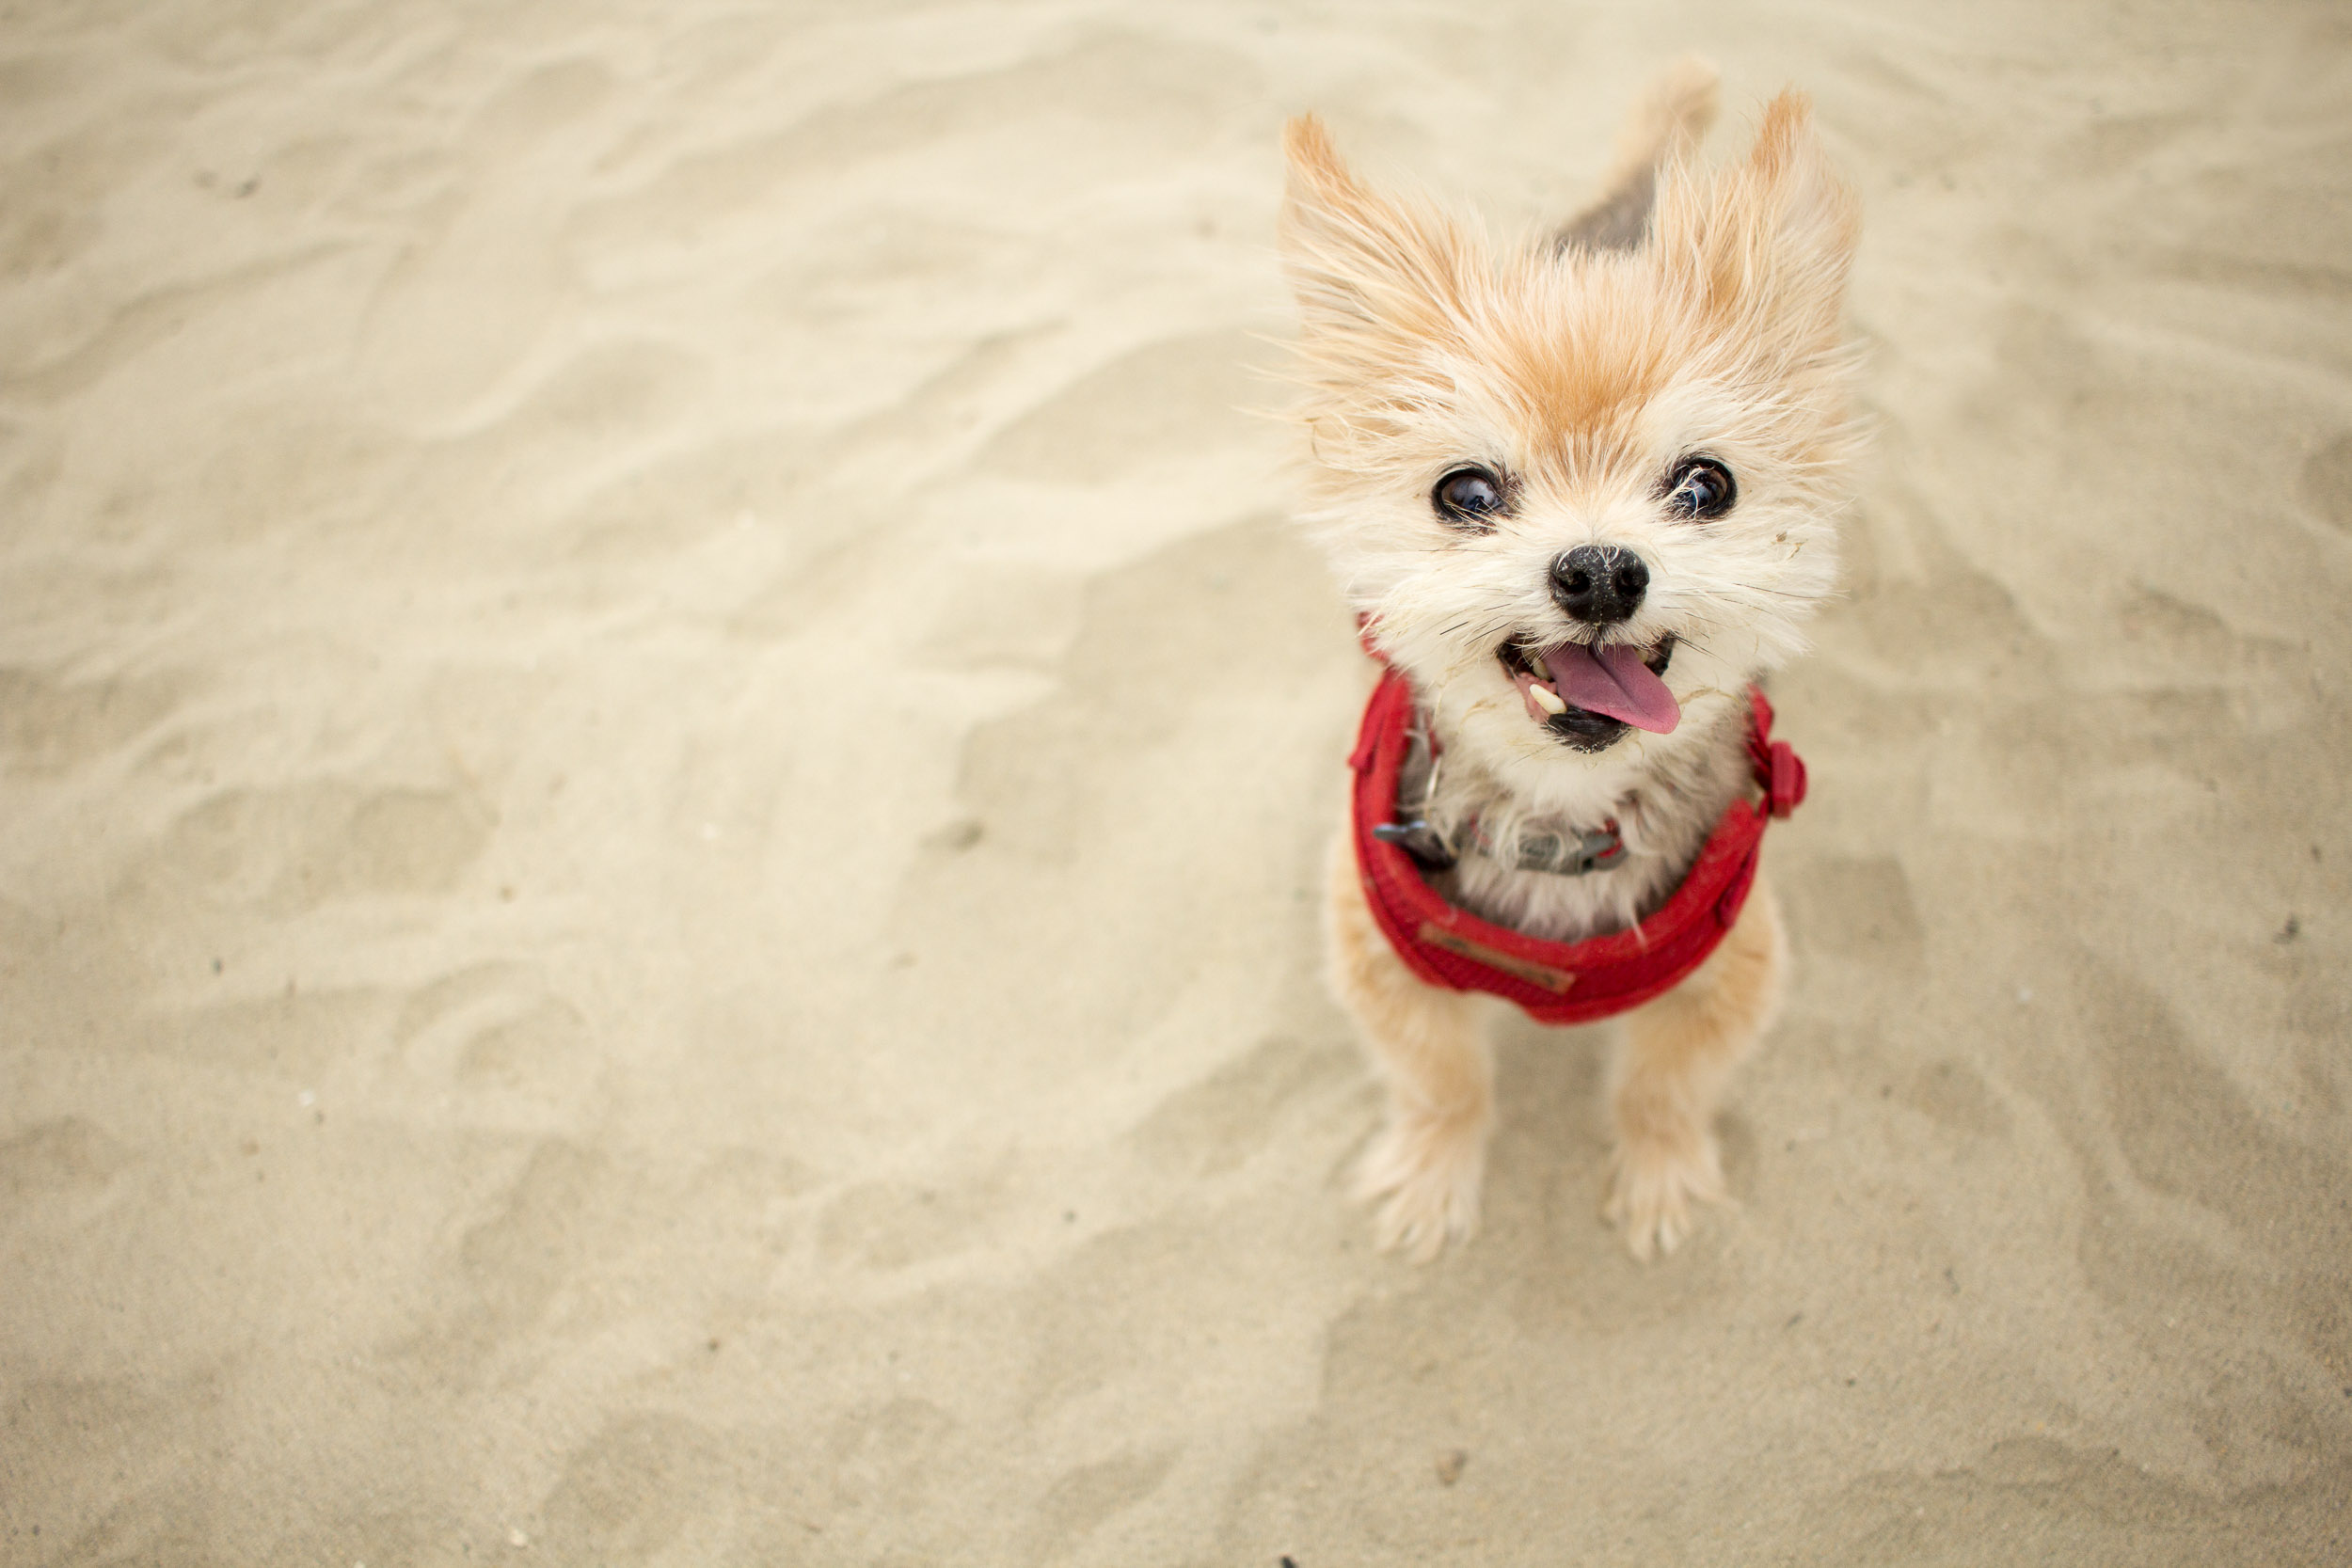 Honorable Corgis of the Day - Photographic Collections of Honorable Corgis at Corgi Beach Day